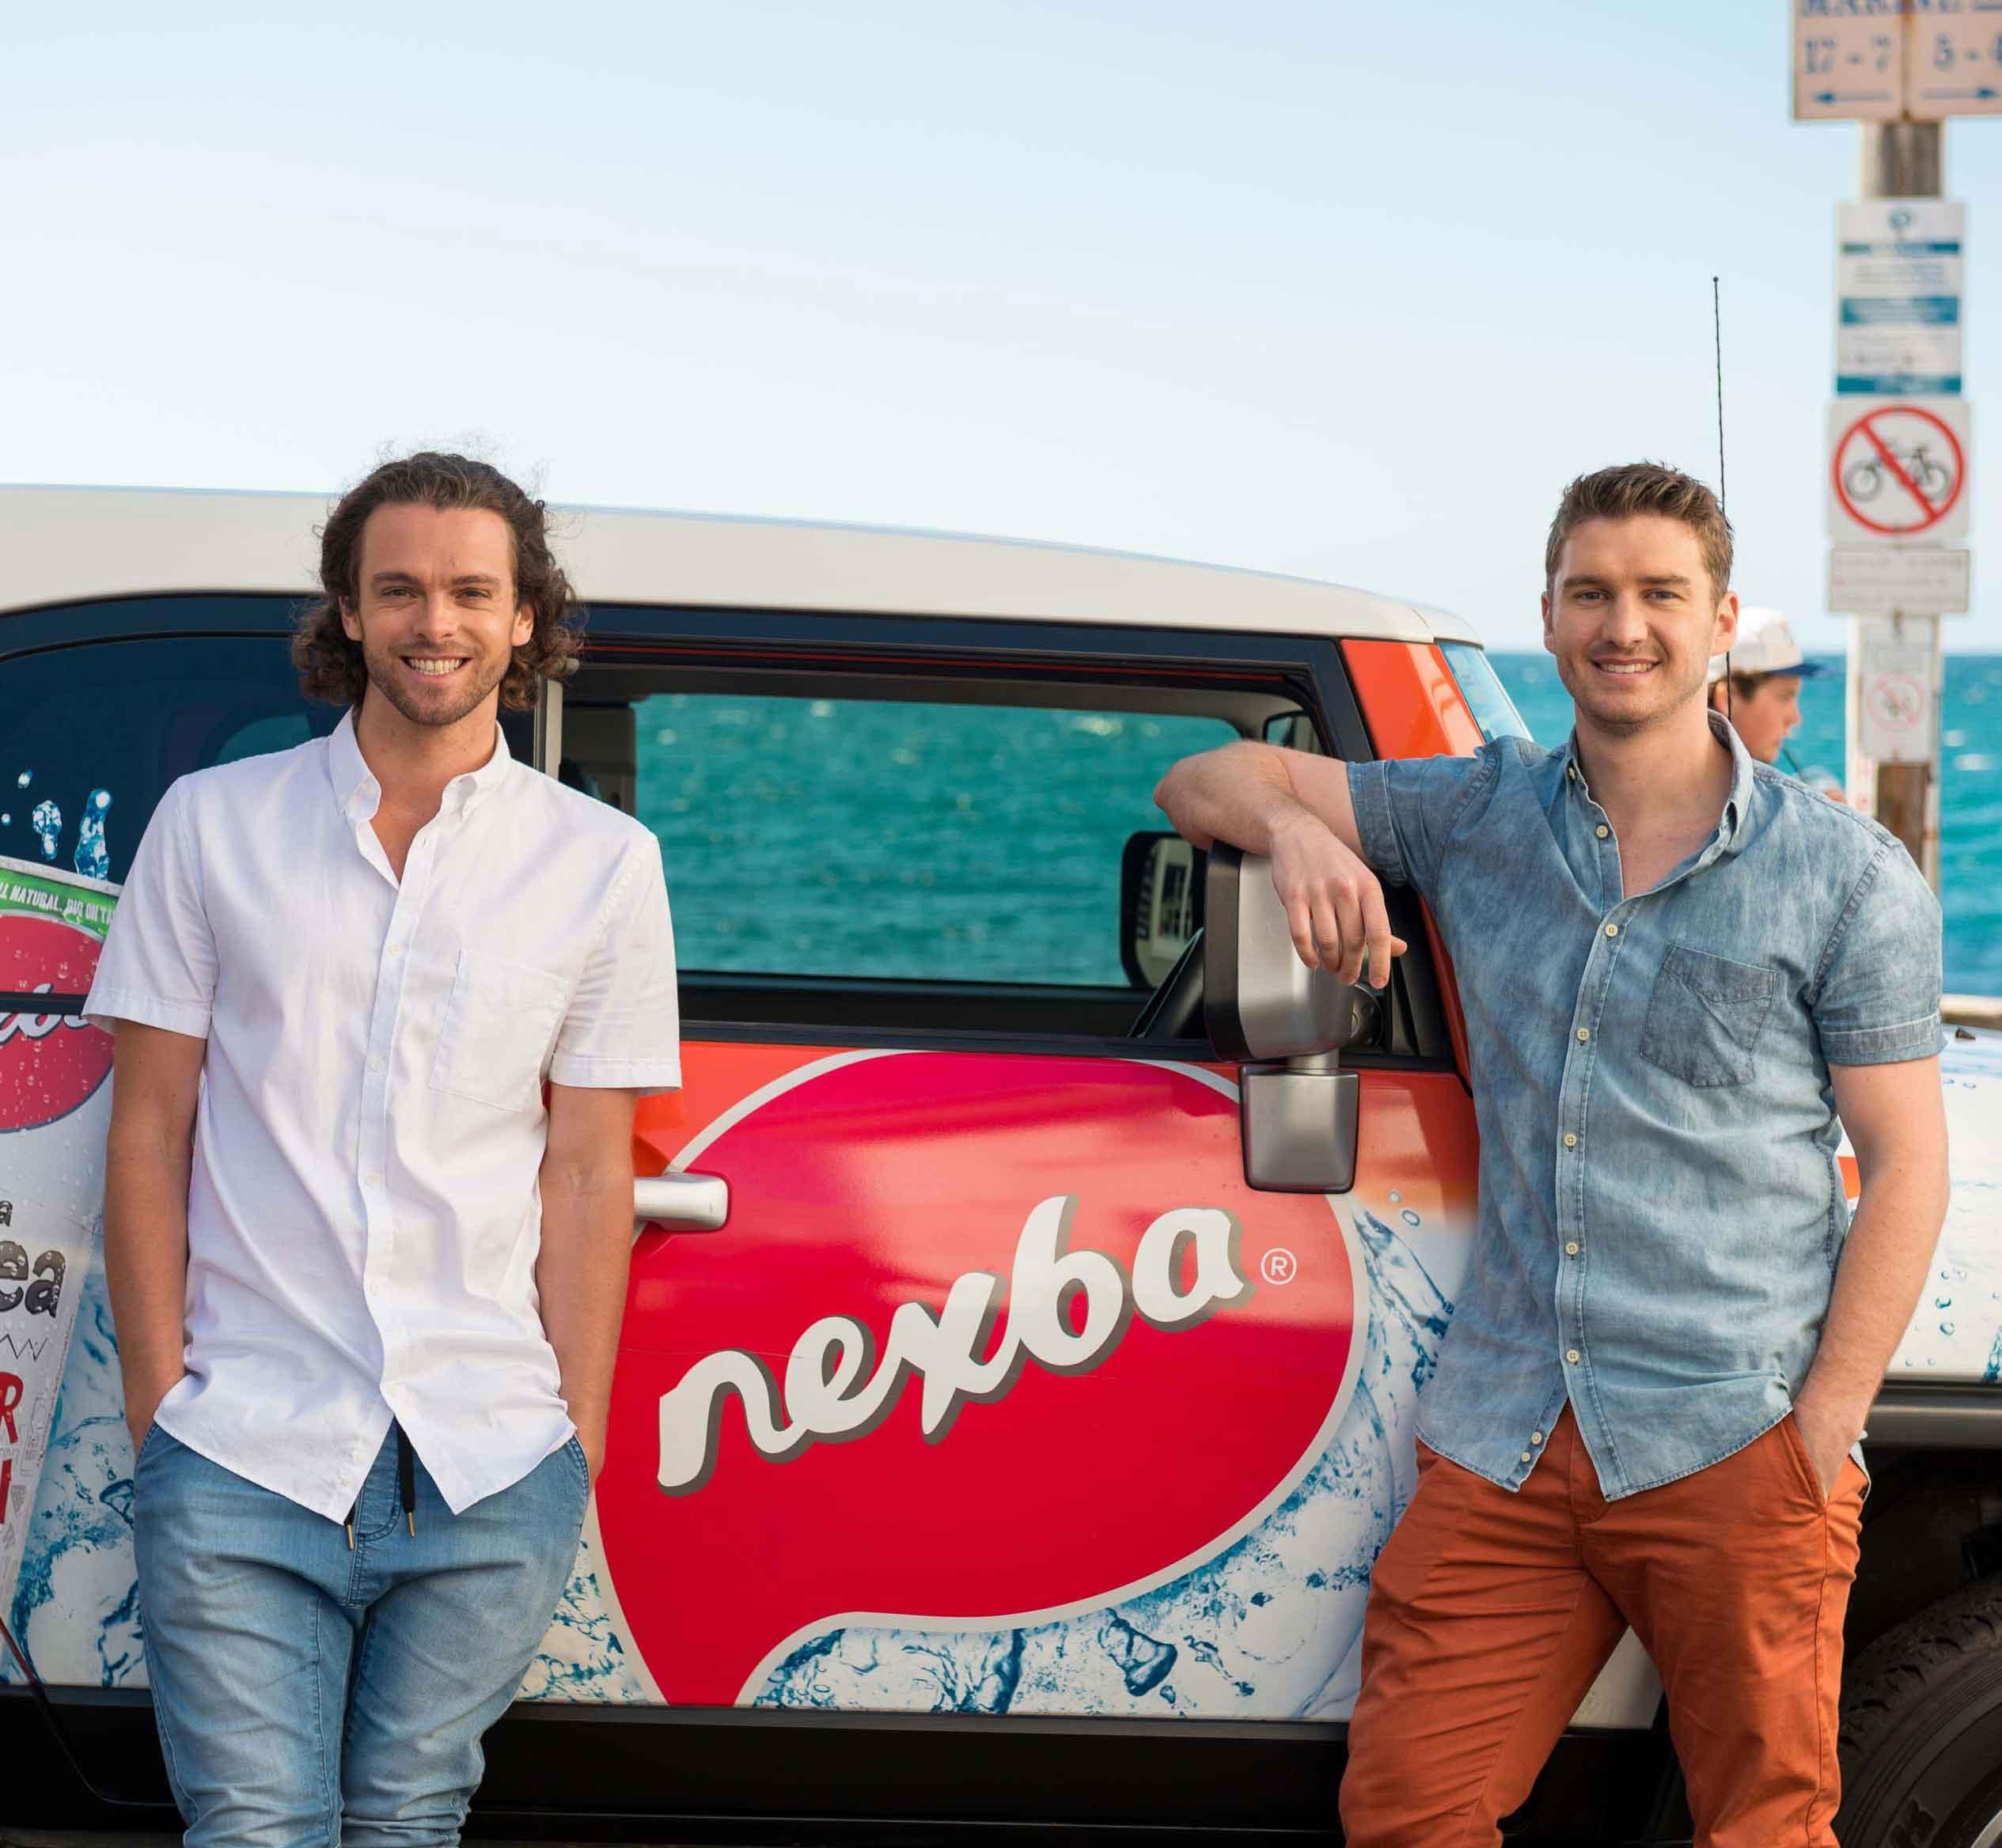 Nexba co-founders Drew-Bilbe-and-Troy-Douglas-Shelley-Beach 3